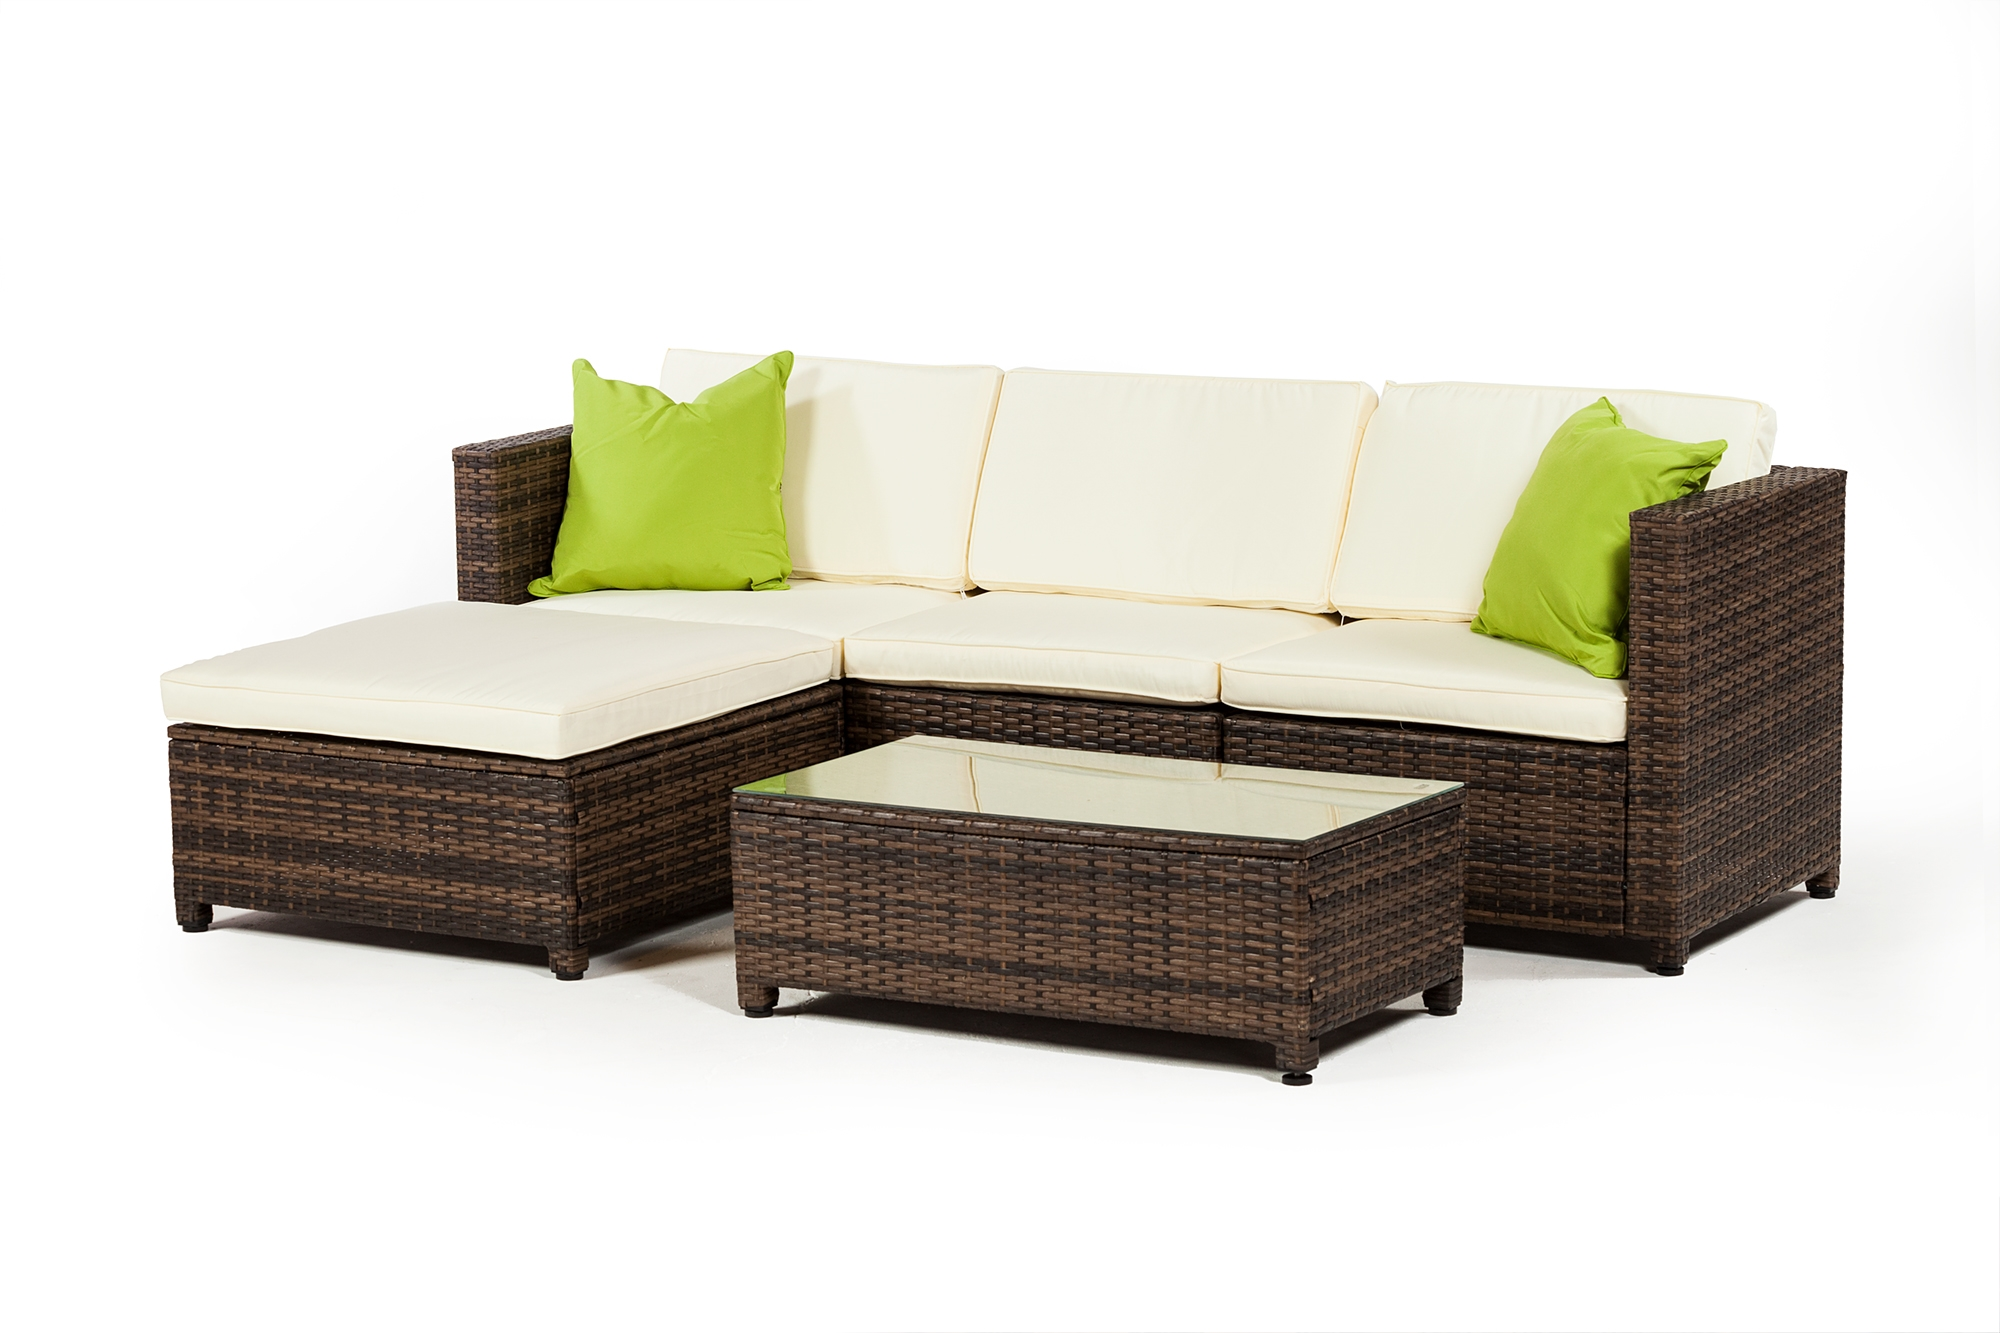 Outdoor furniture 3 piece set with ottoman in grey rattan the khazana home austin furniture store